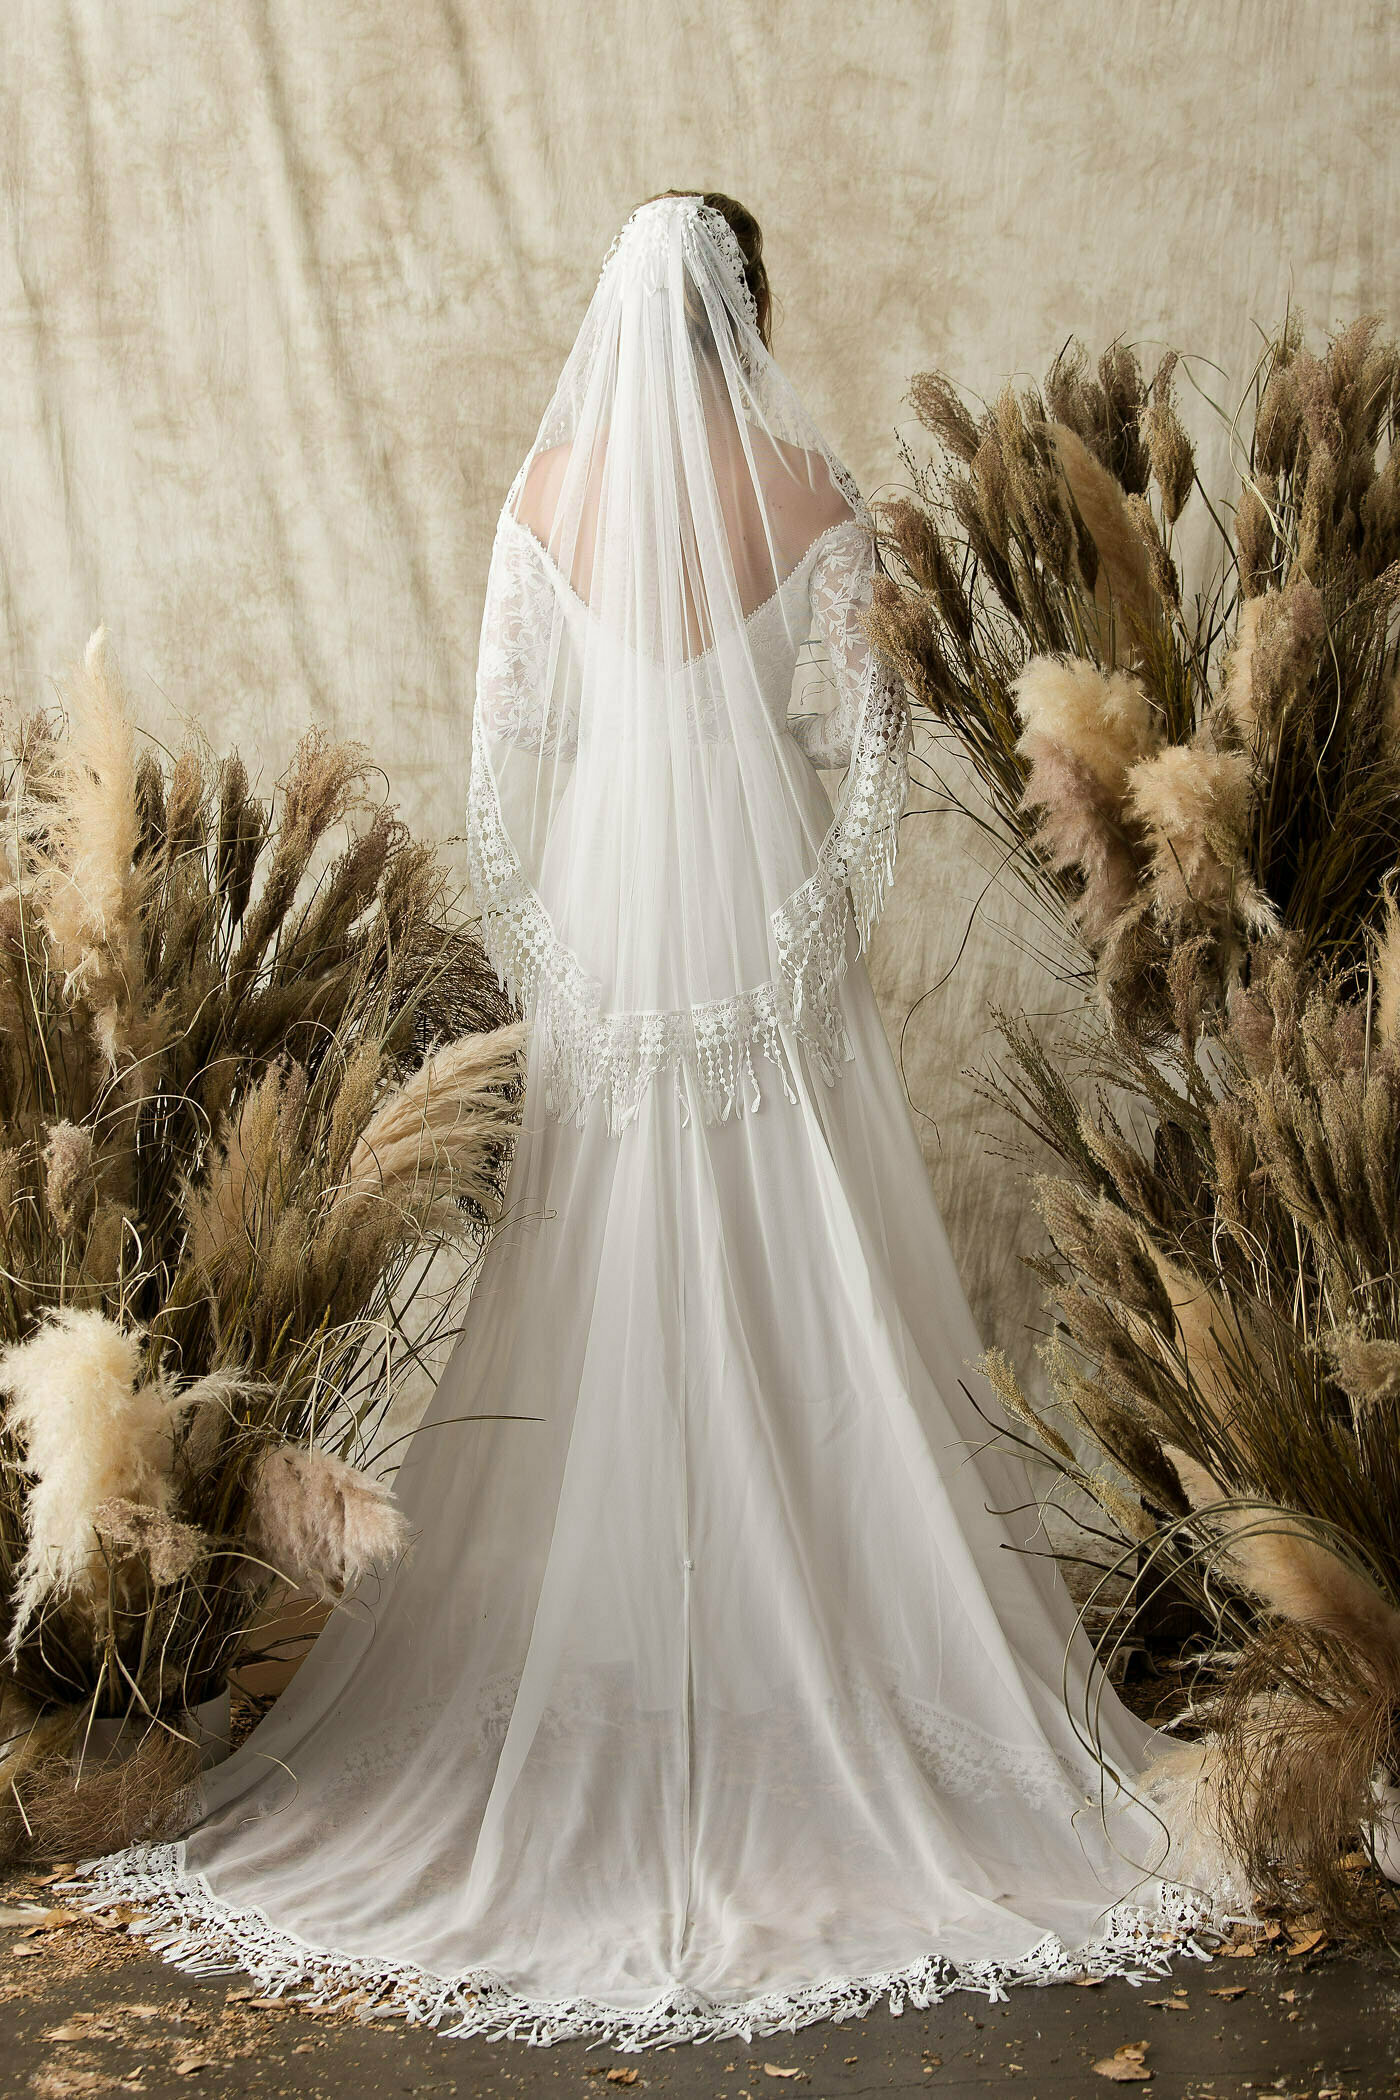 fingertip-length-veil-with-fringr-trim-for-boho-bride